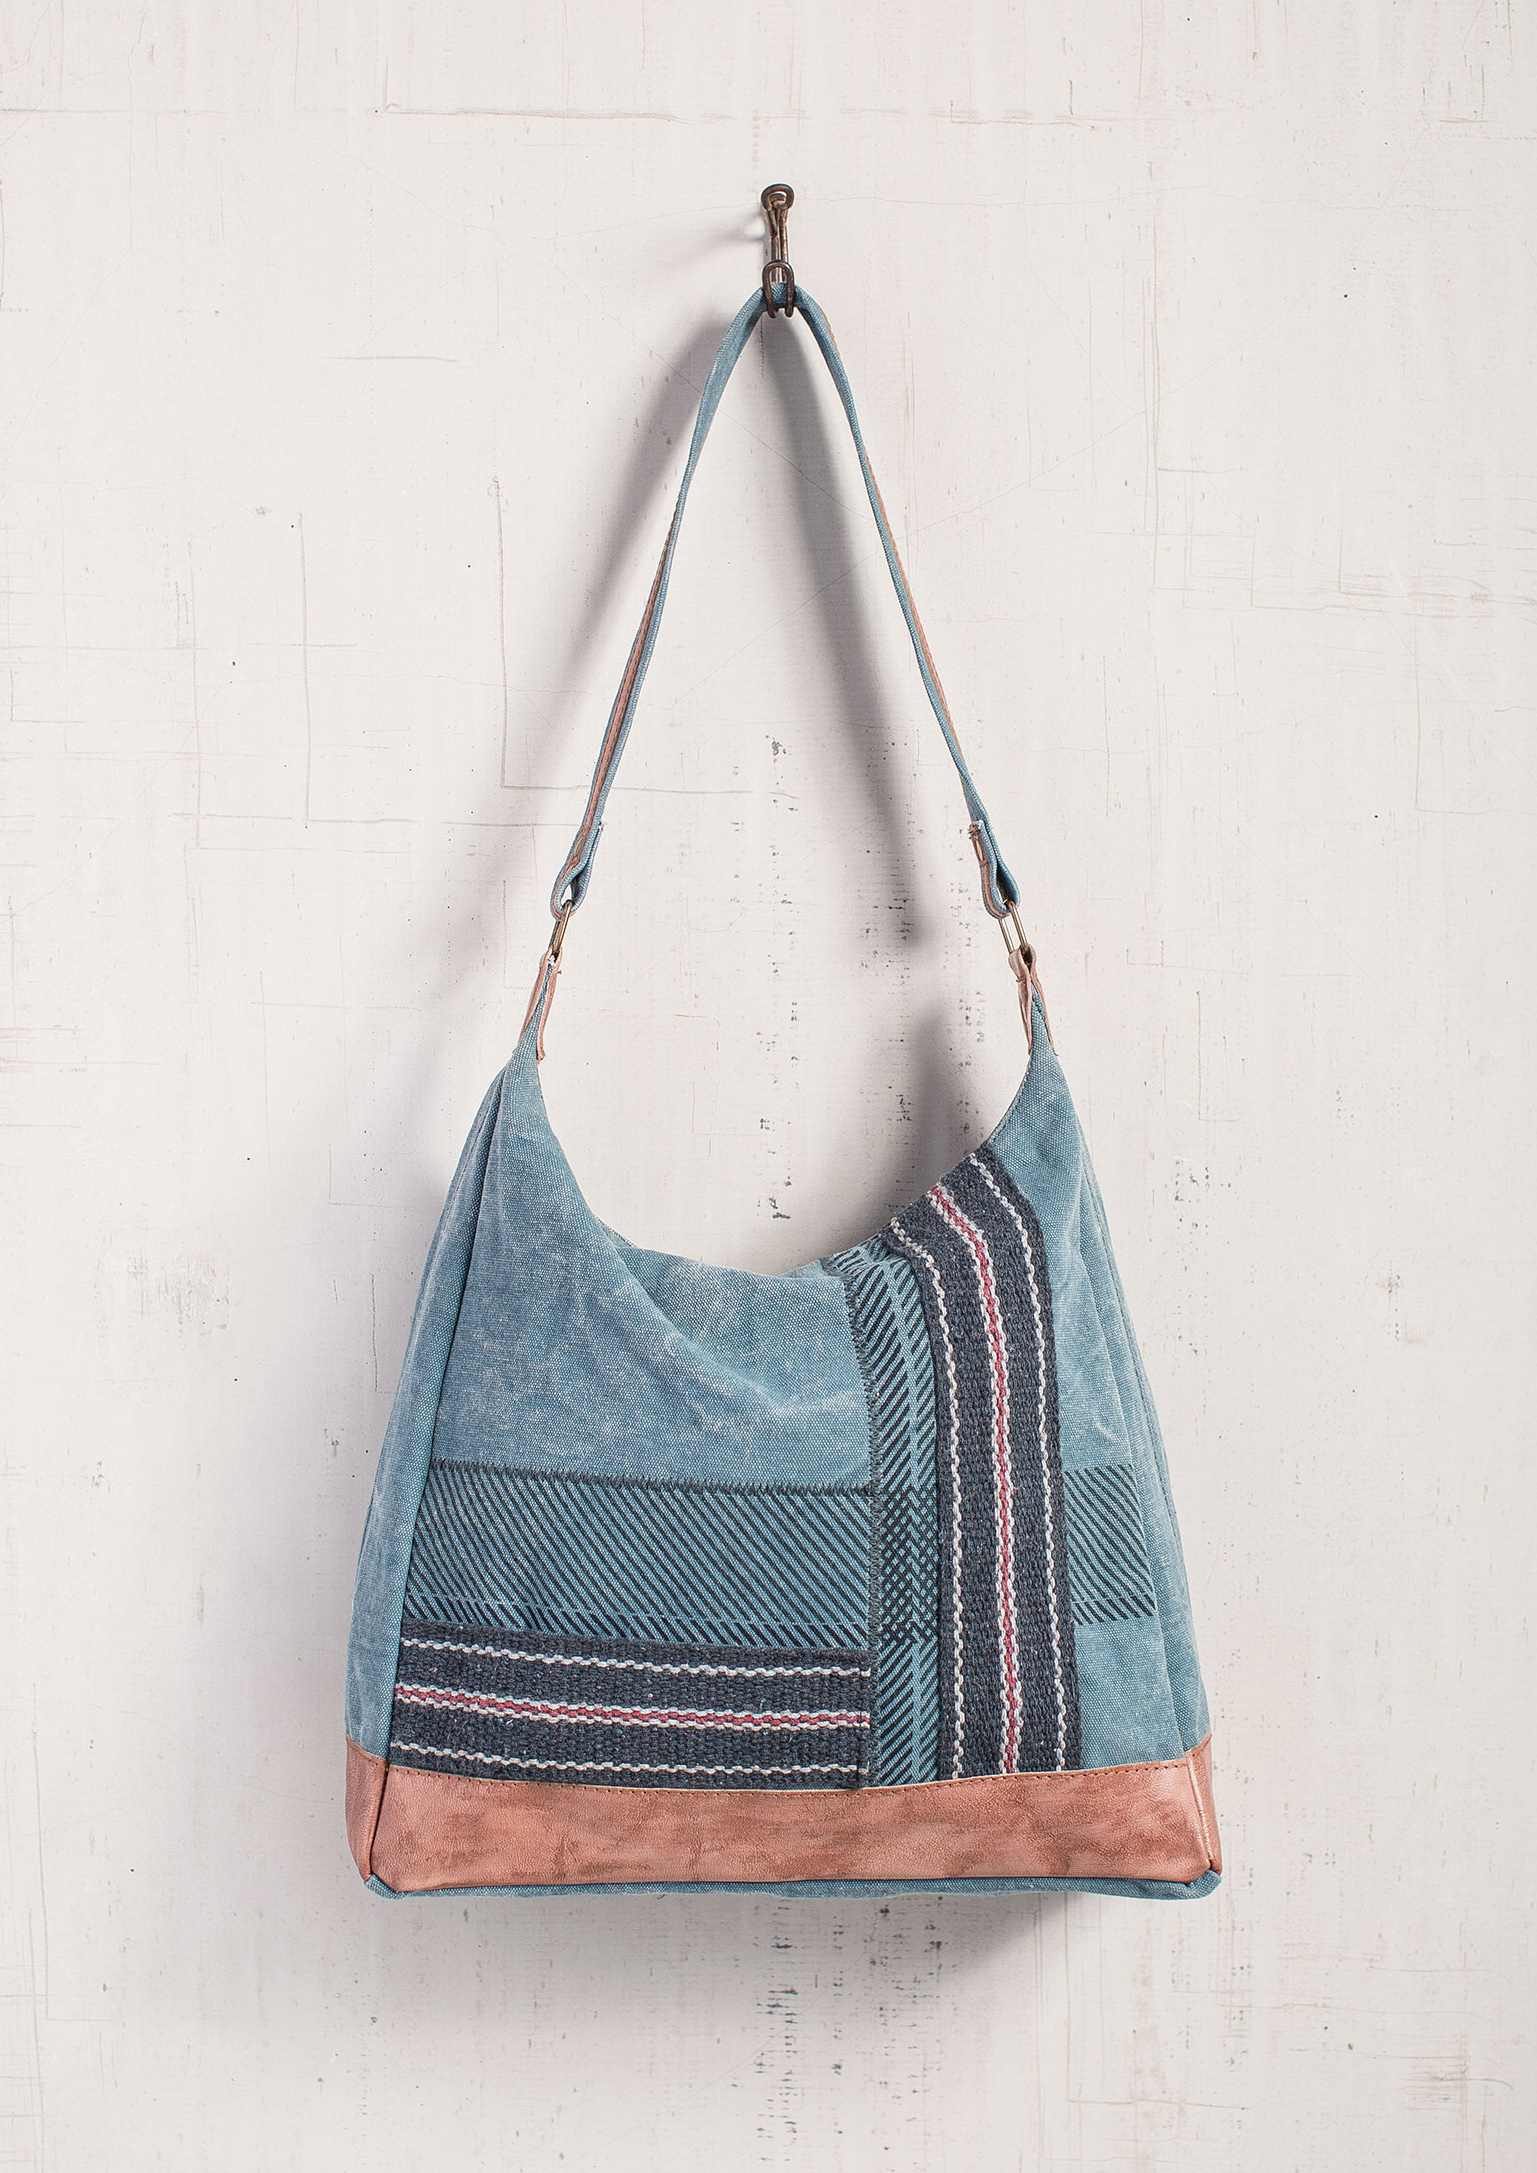 Sky charcoal shoulder bag